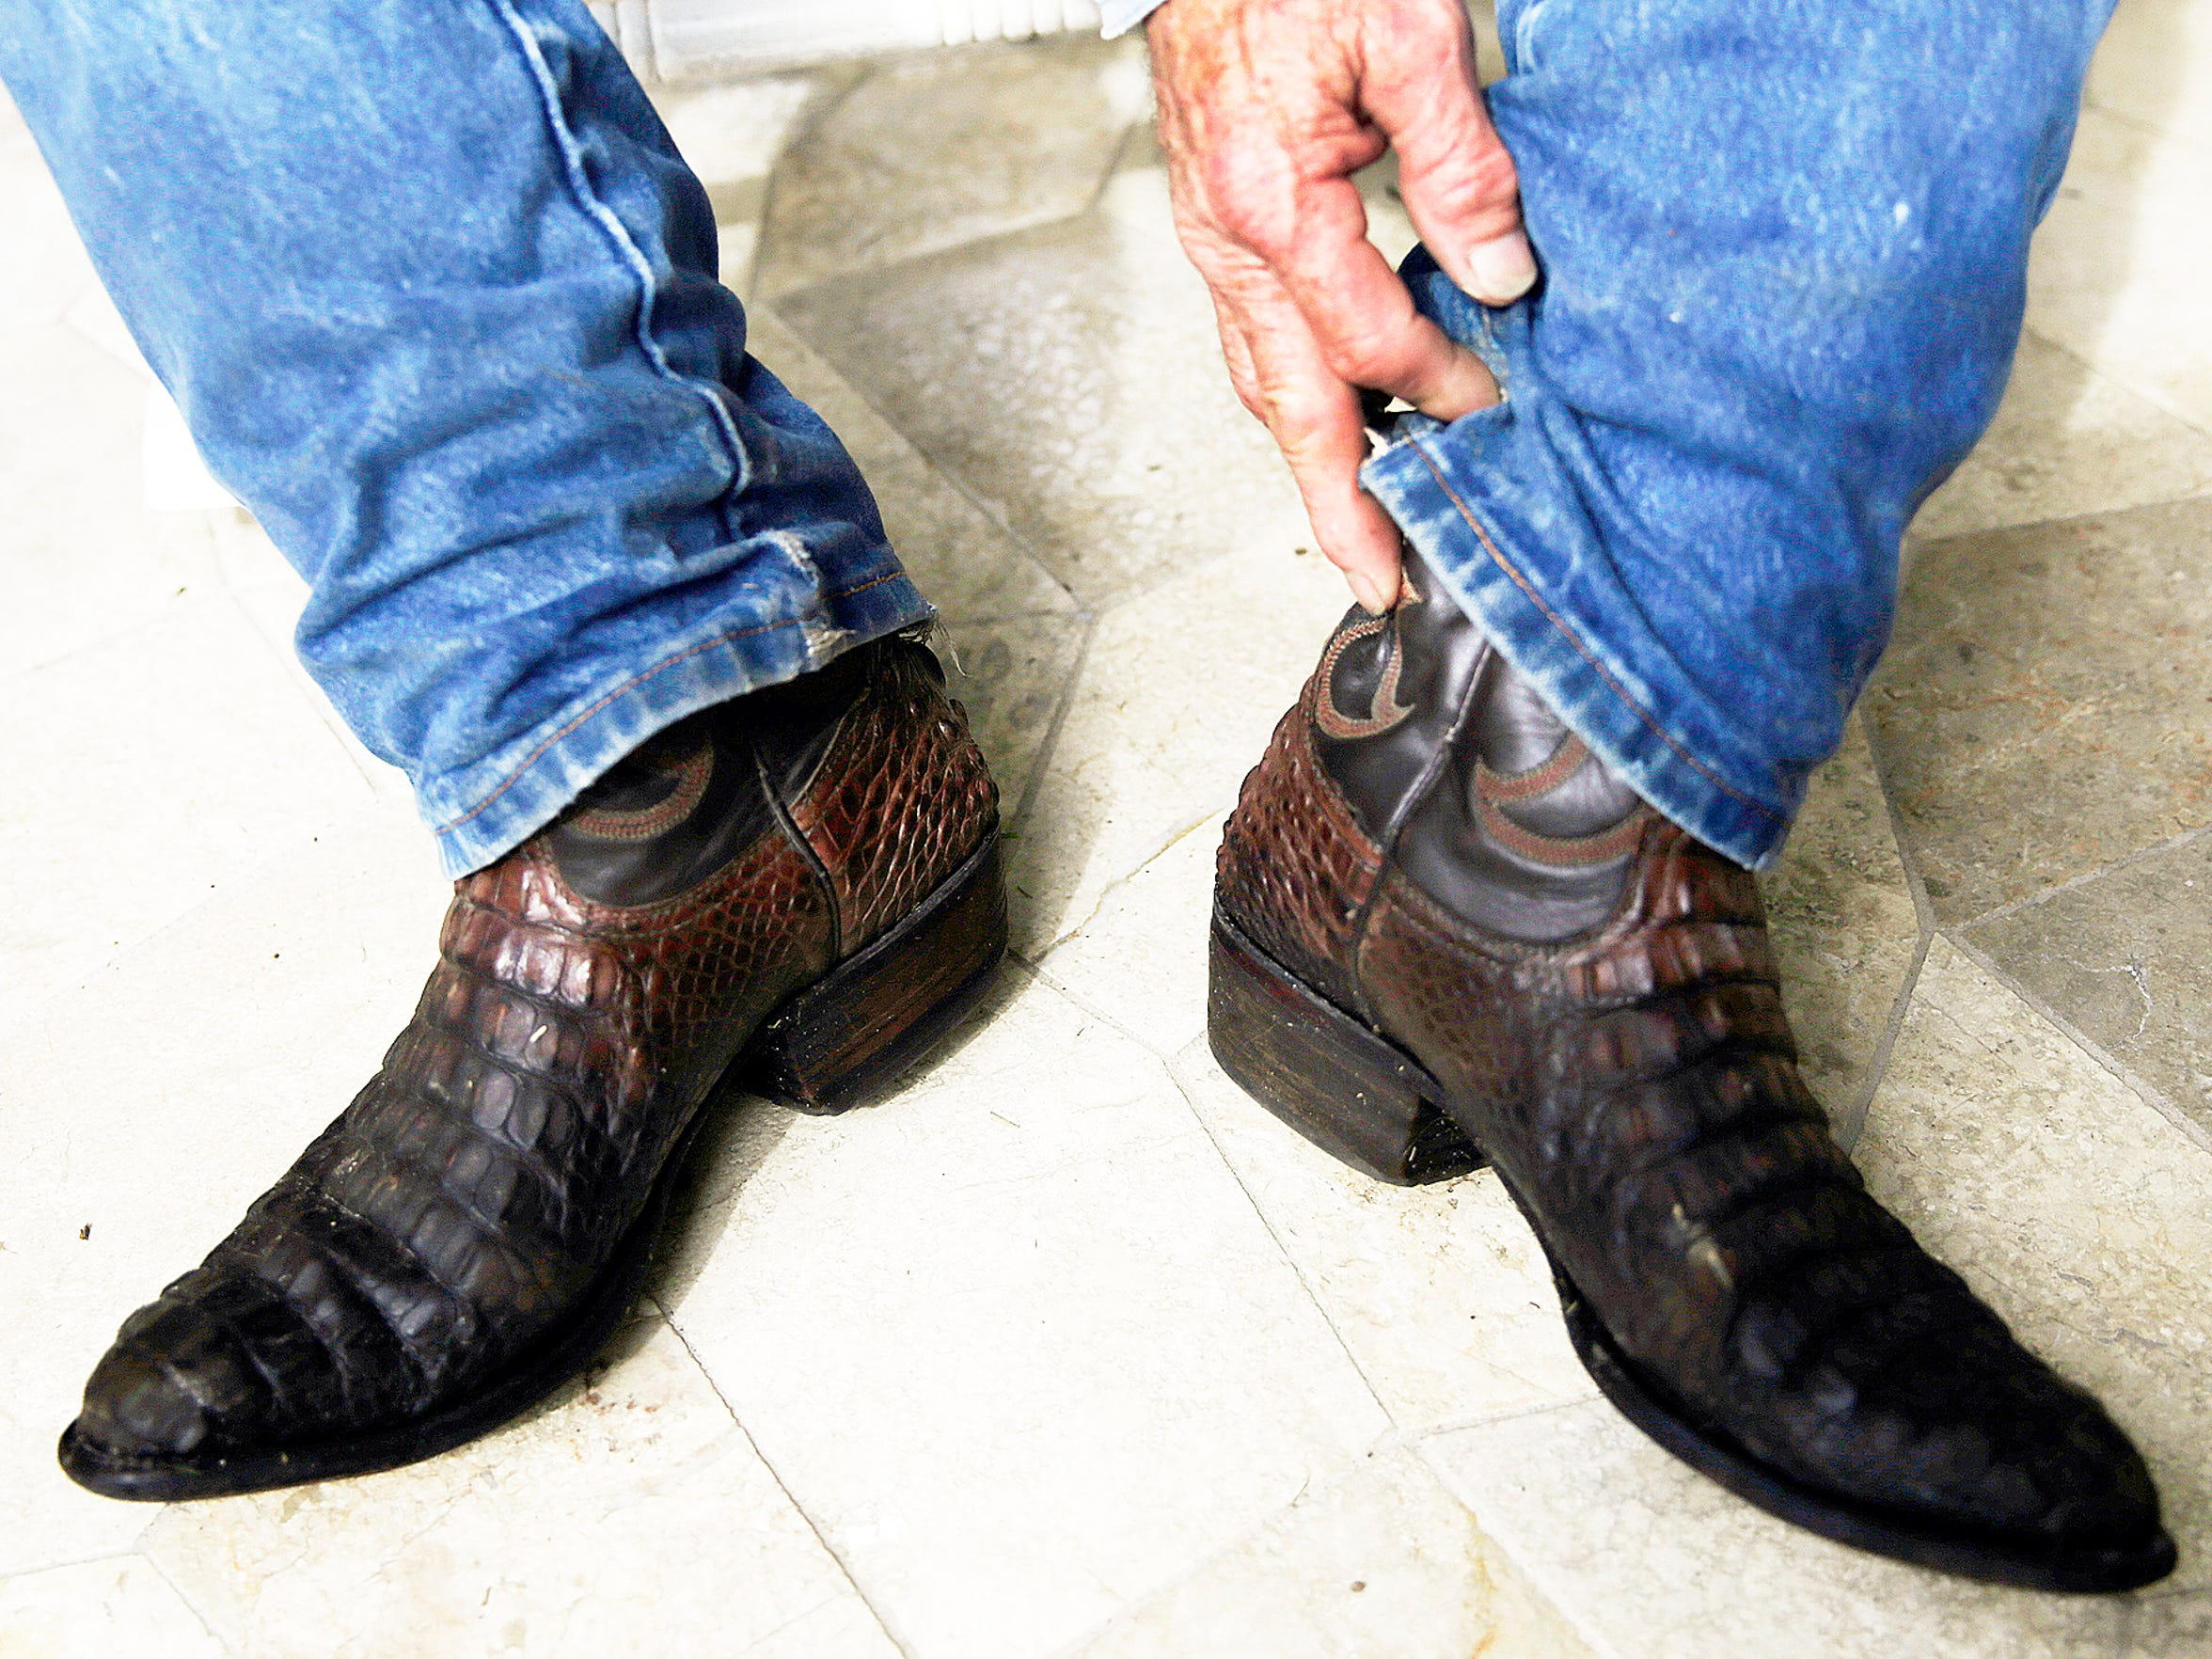 Kelvin Townsend wears his custom alligator skin boots in his home on Monday, Aug. 29, 2016. Townsend owns Townsend and Sons Gator Farm and Processing which does the processing for All American Gator Products, which is owned by Brian Wood.